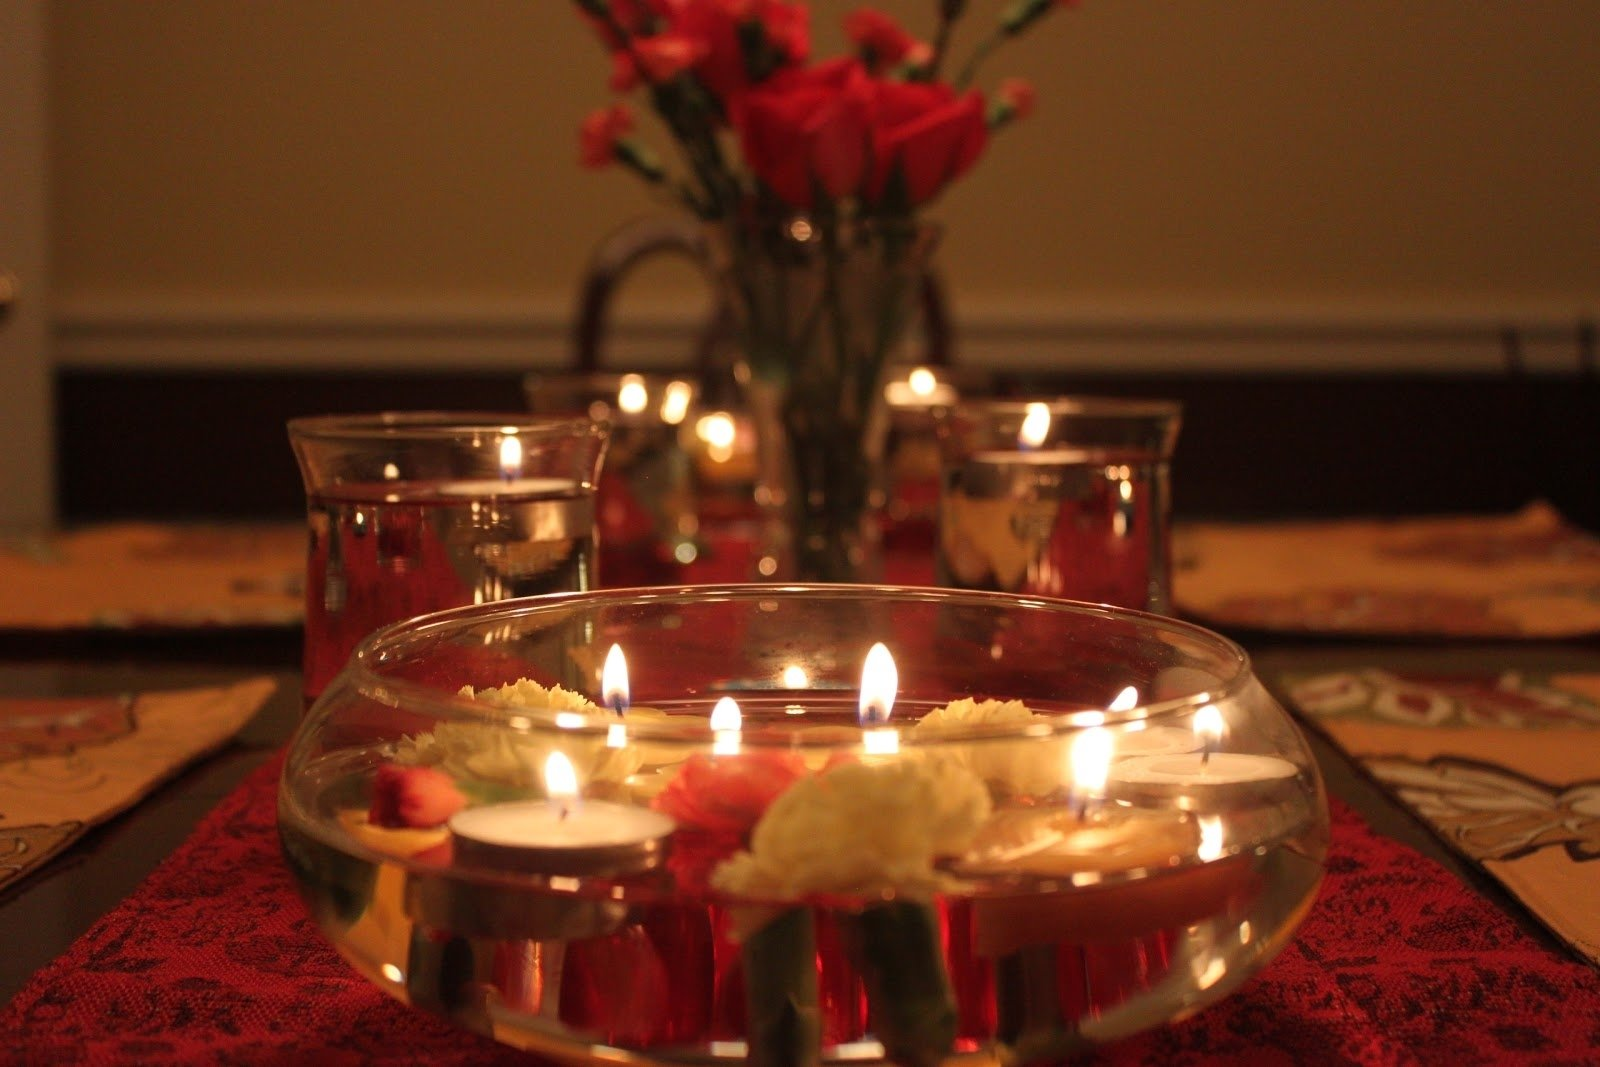 10 Fabulous Ideas For Romantic Night At Home great tips to make it a memorable romantic dinner at home 2 2020